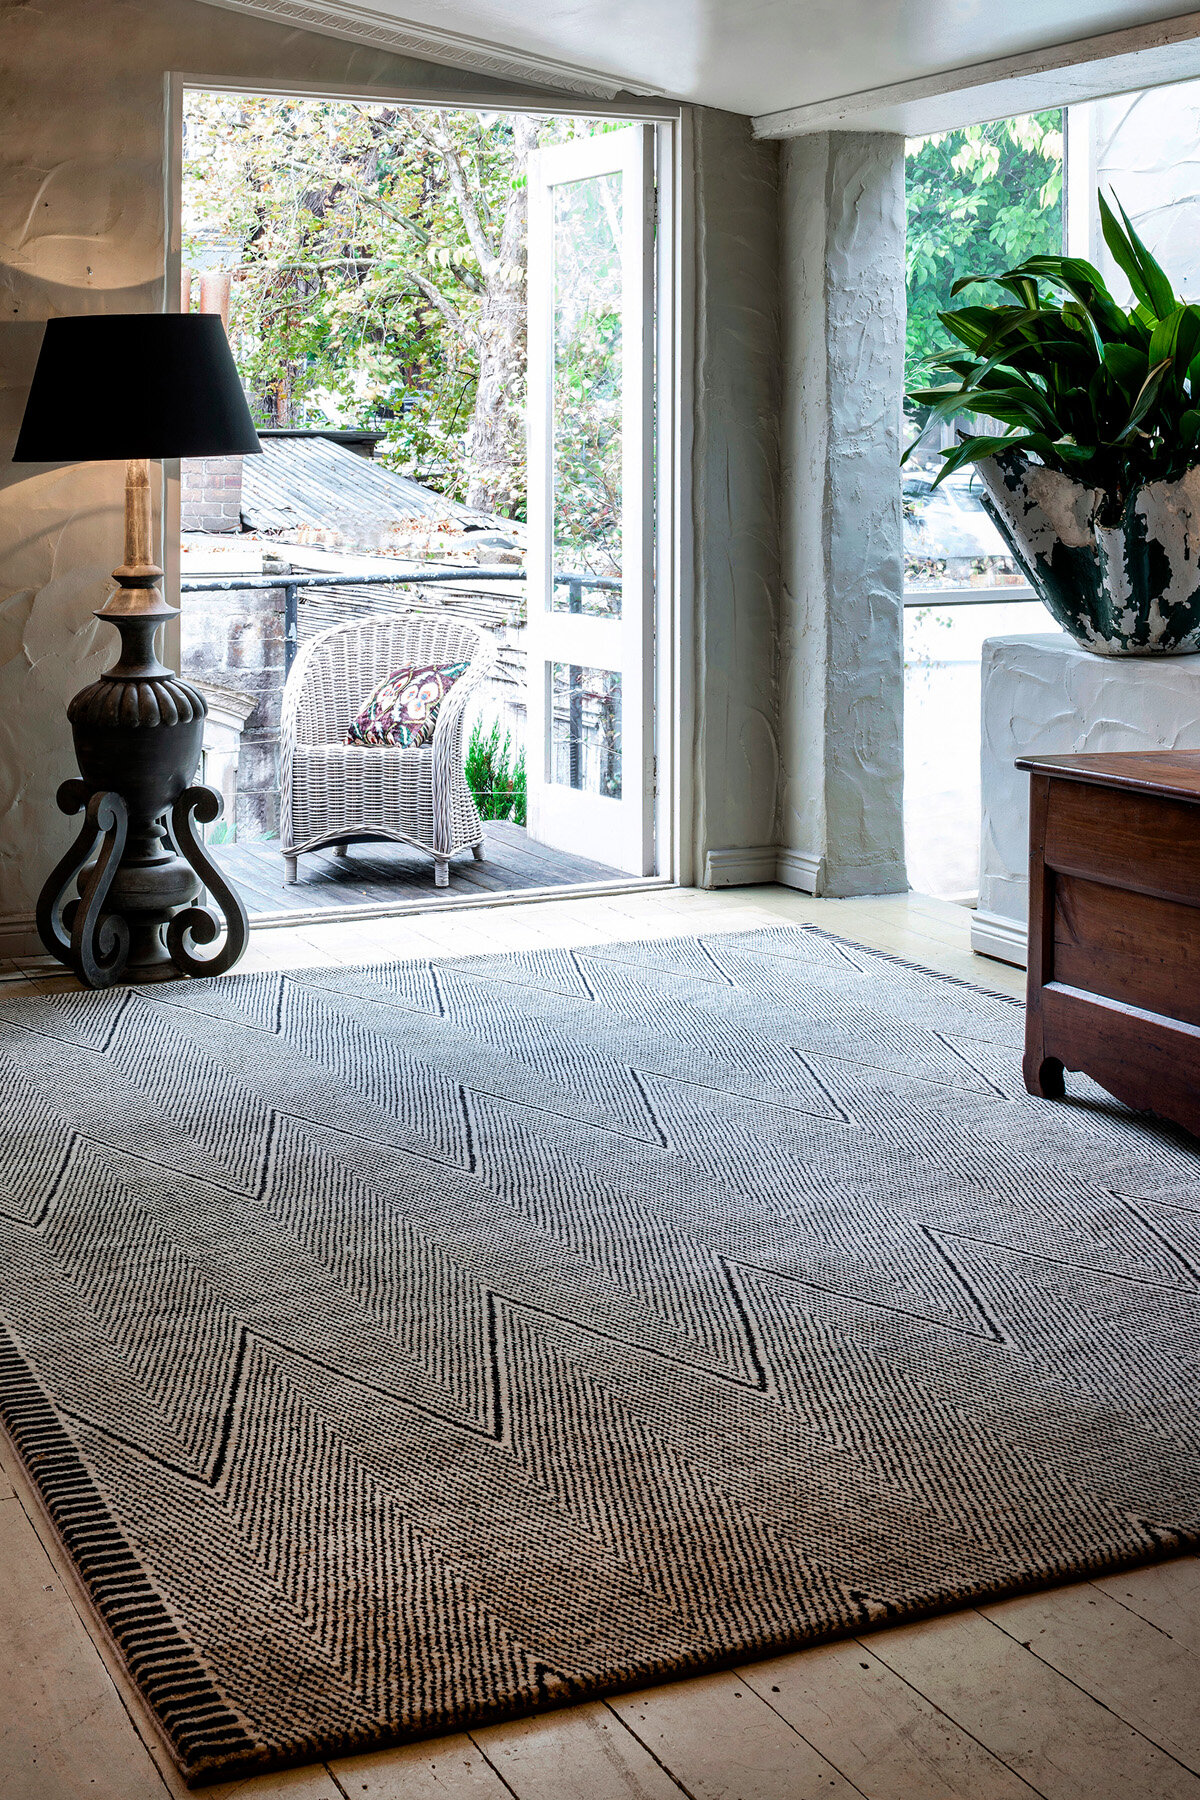 Rug Collections Robyn Cosgrove Rugs